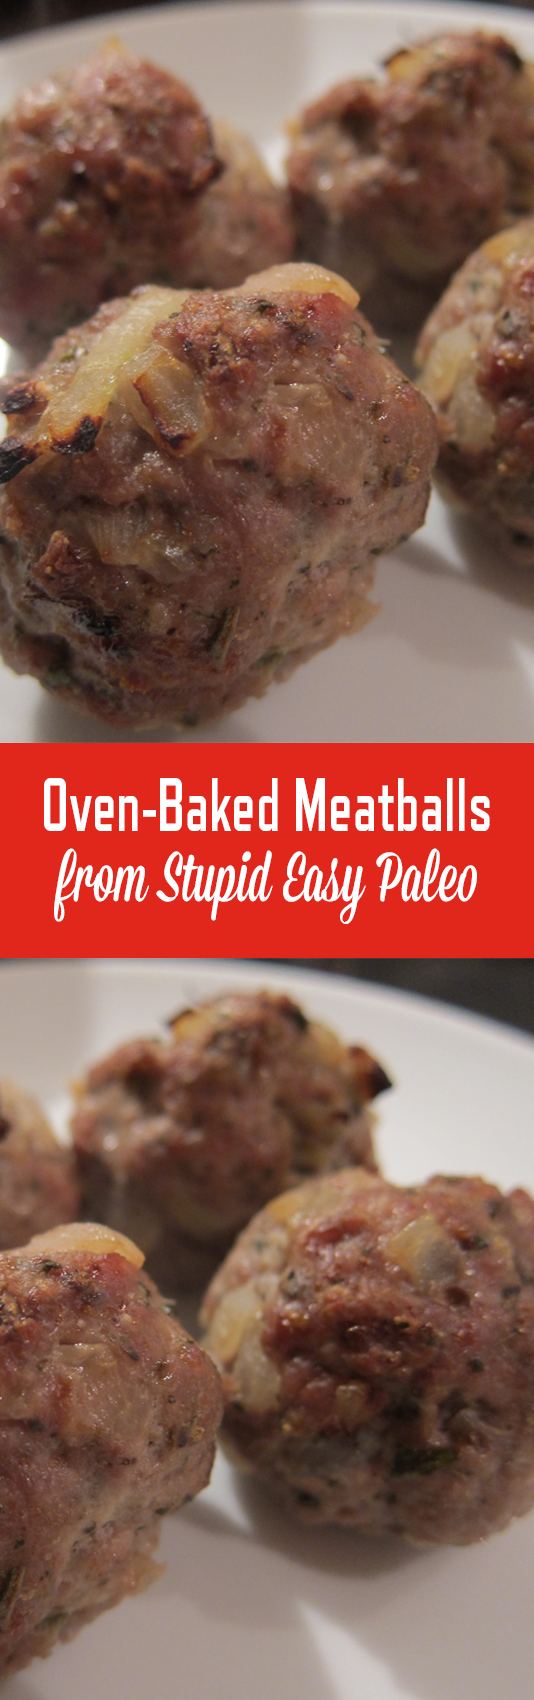 Oven-Baked Emergency Meatballs | StupidEasyPaleo.com